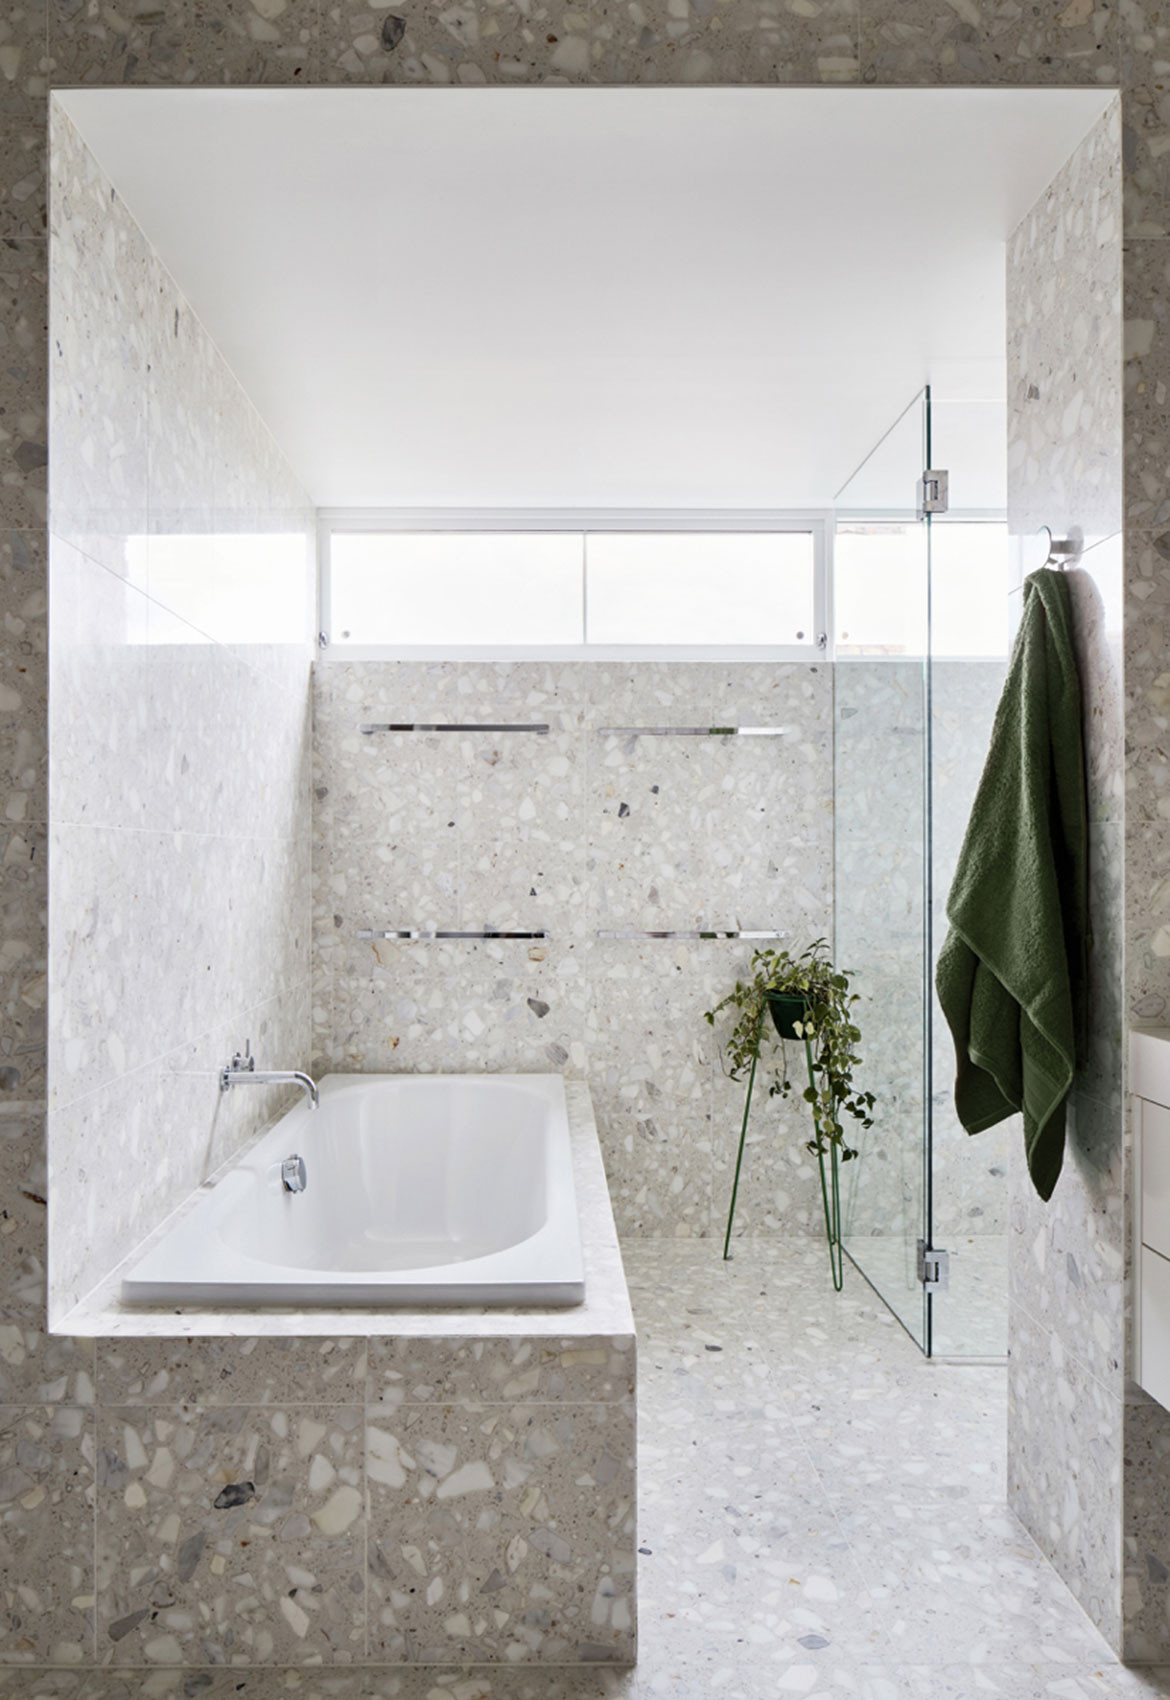 Holroyd Court Foomann Architects cc Willem Dirk du Toit bathroom